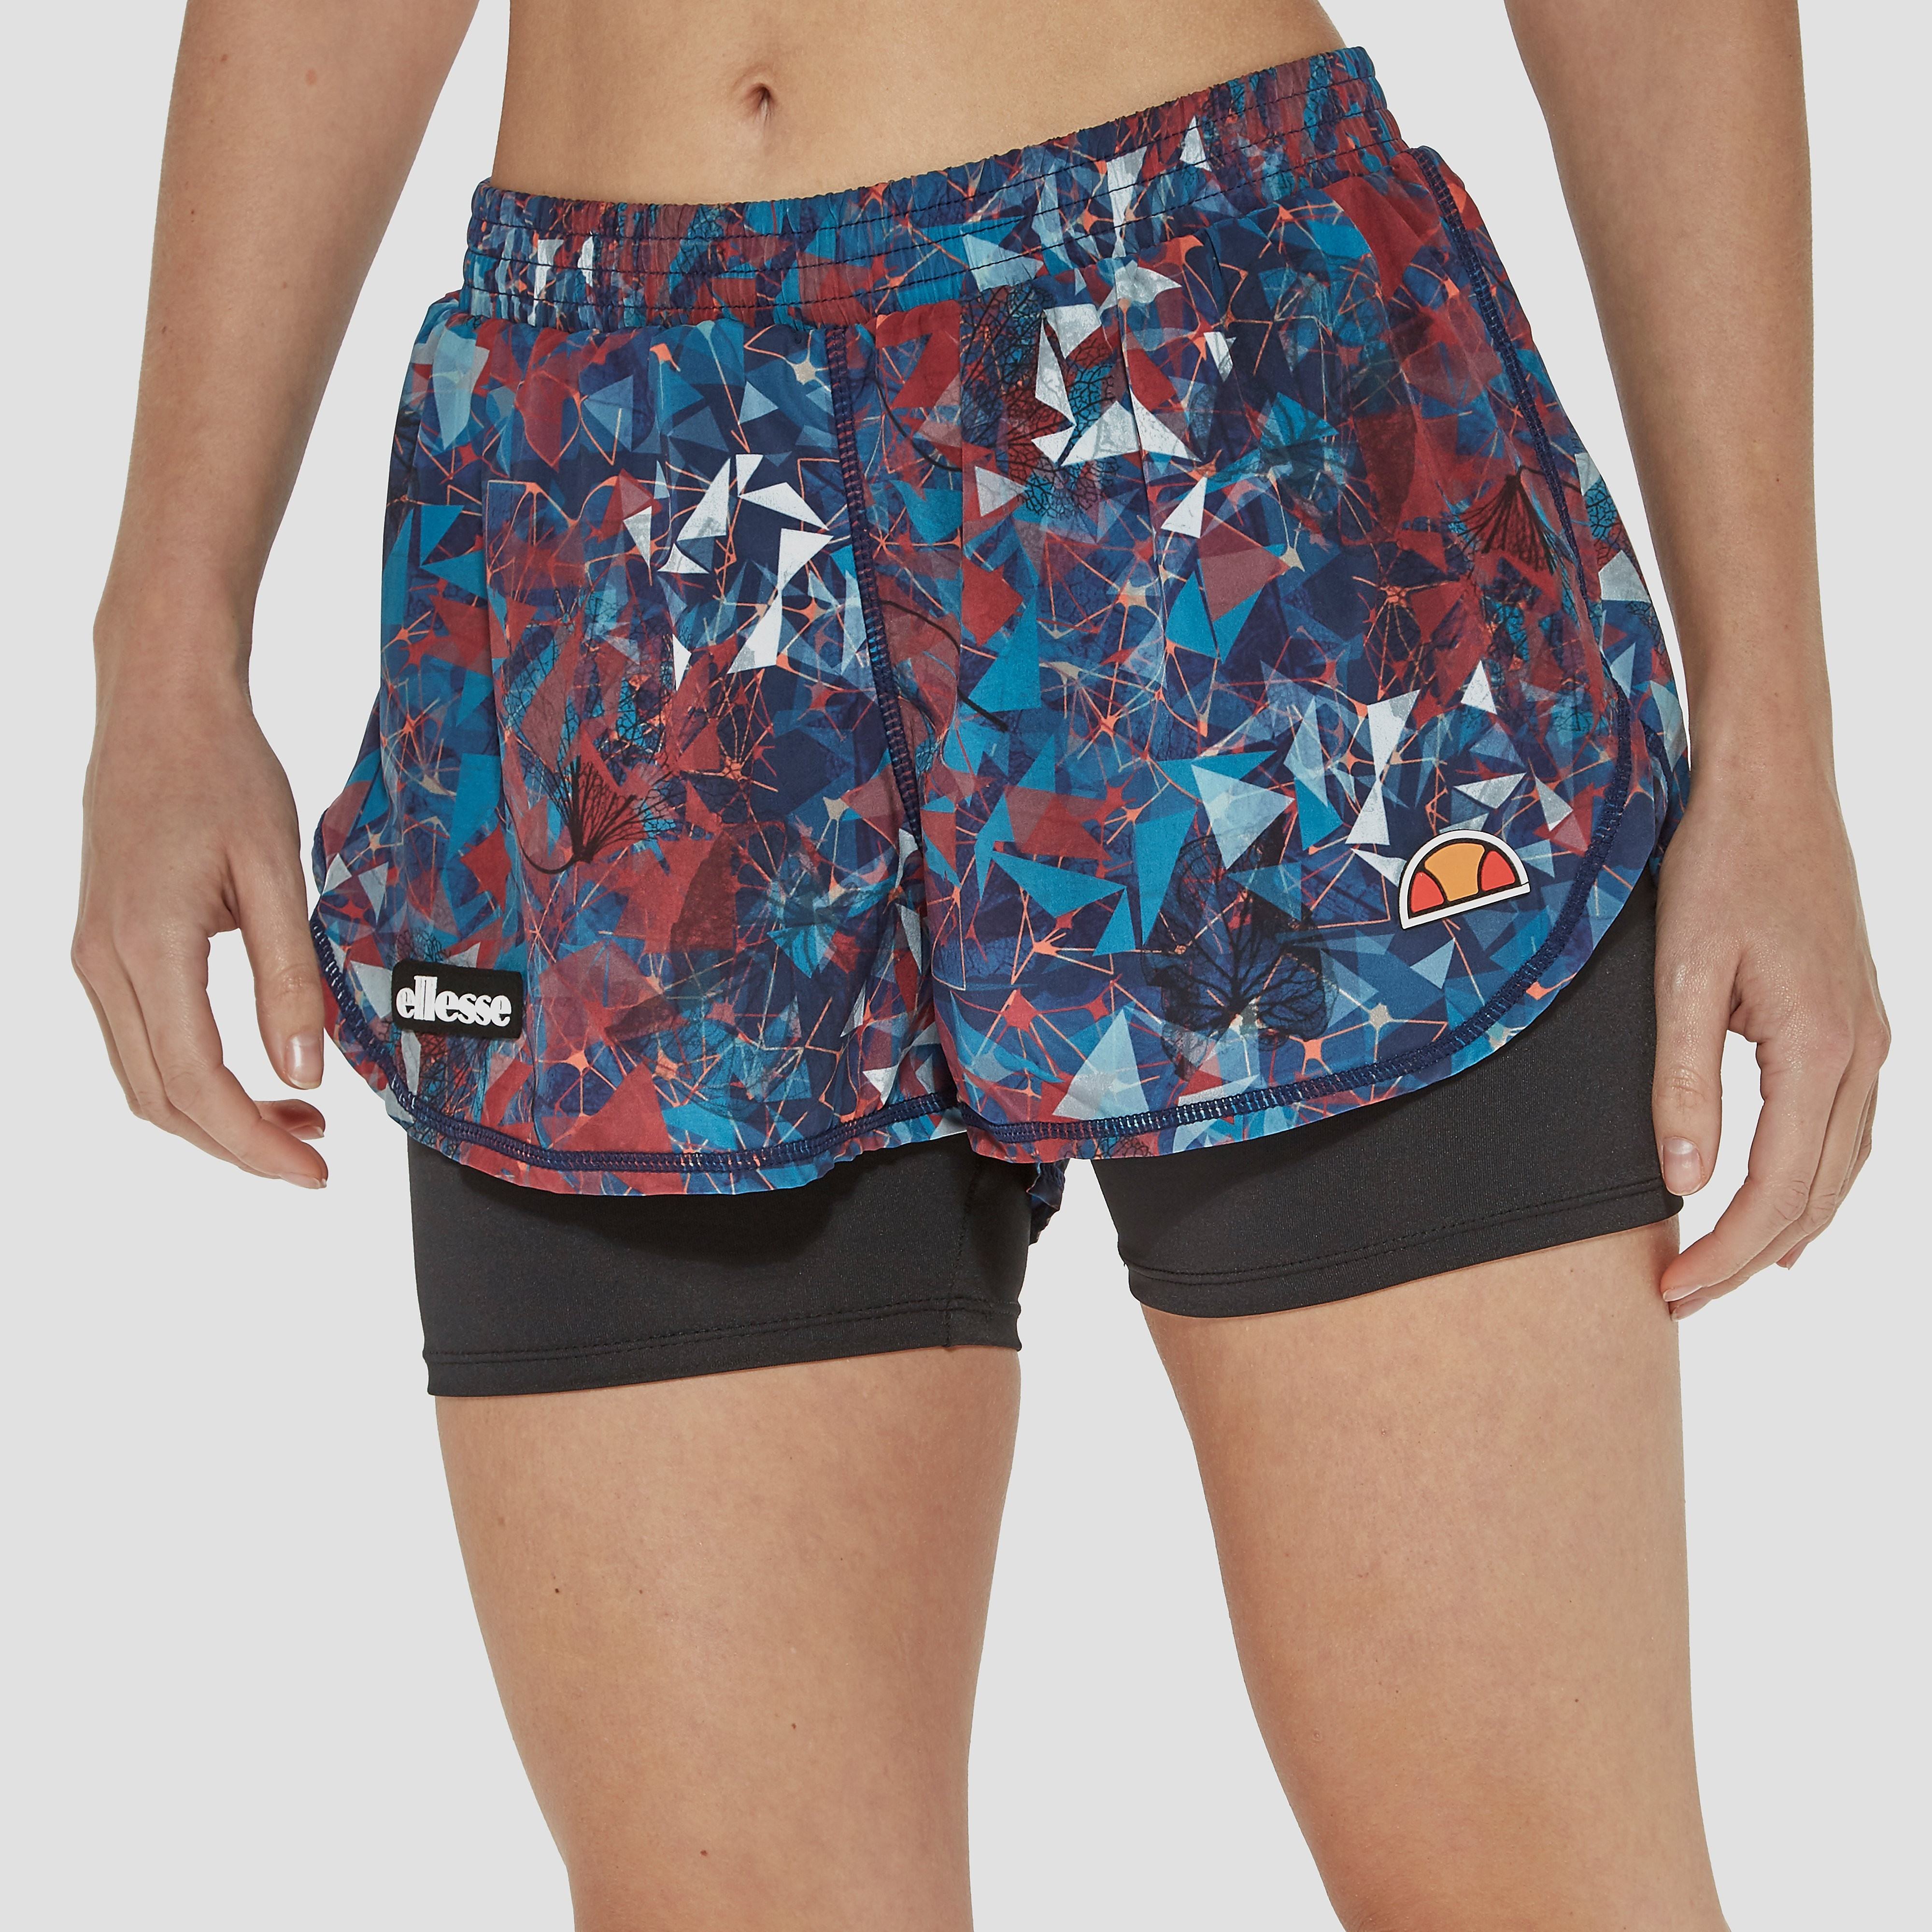 Ellesse Women's Mollusco 2 in 1 Shorts